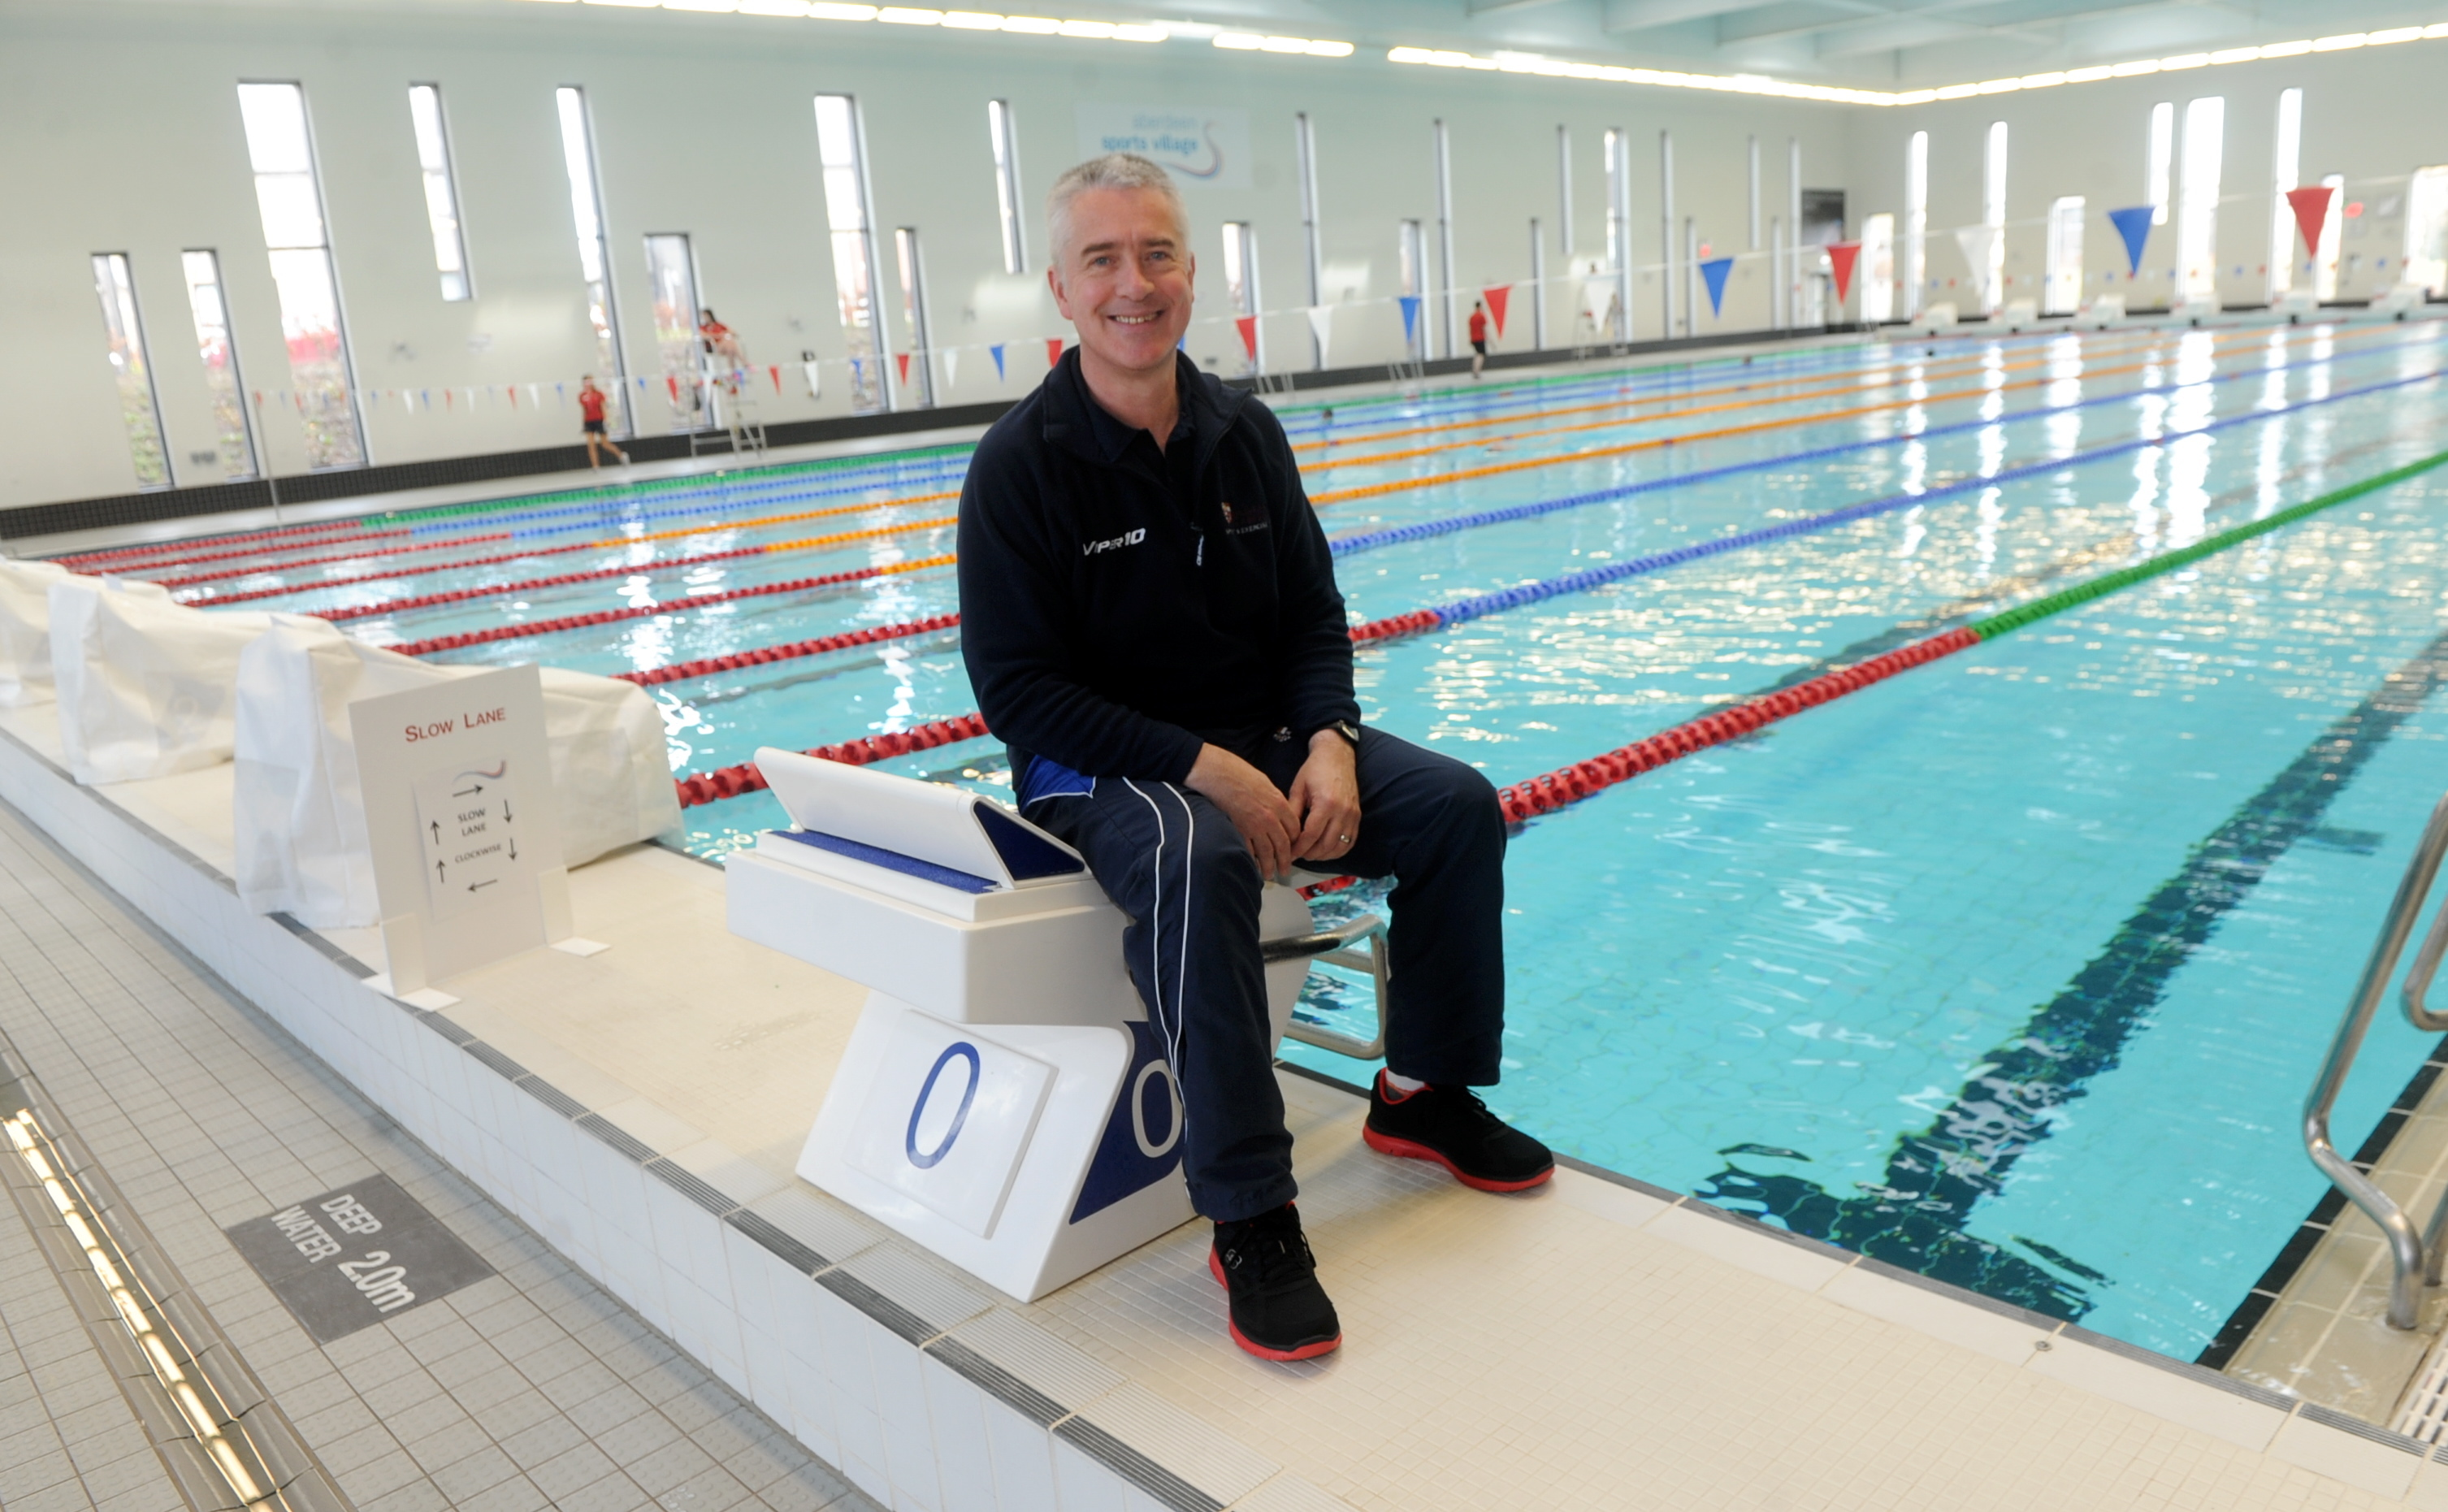 Patrick Miley at the Aberdeen Aquatics Centre. (Picture by Chris Sumner.)